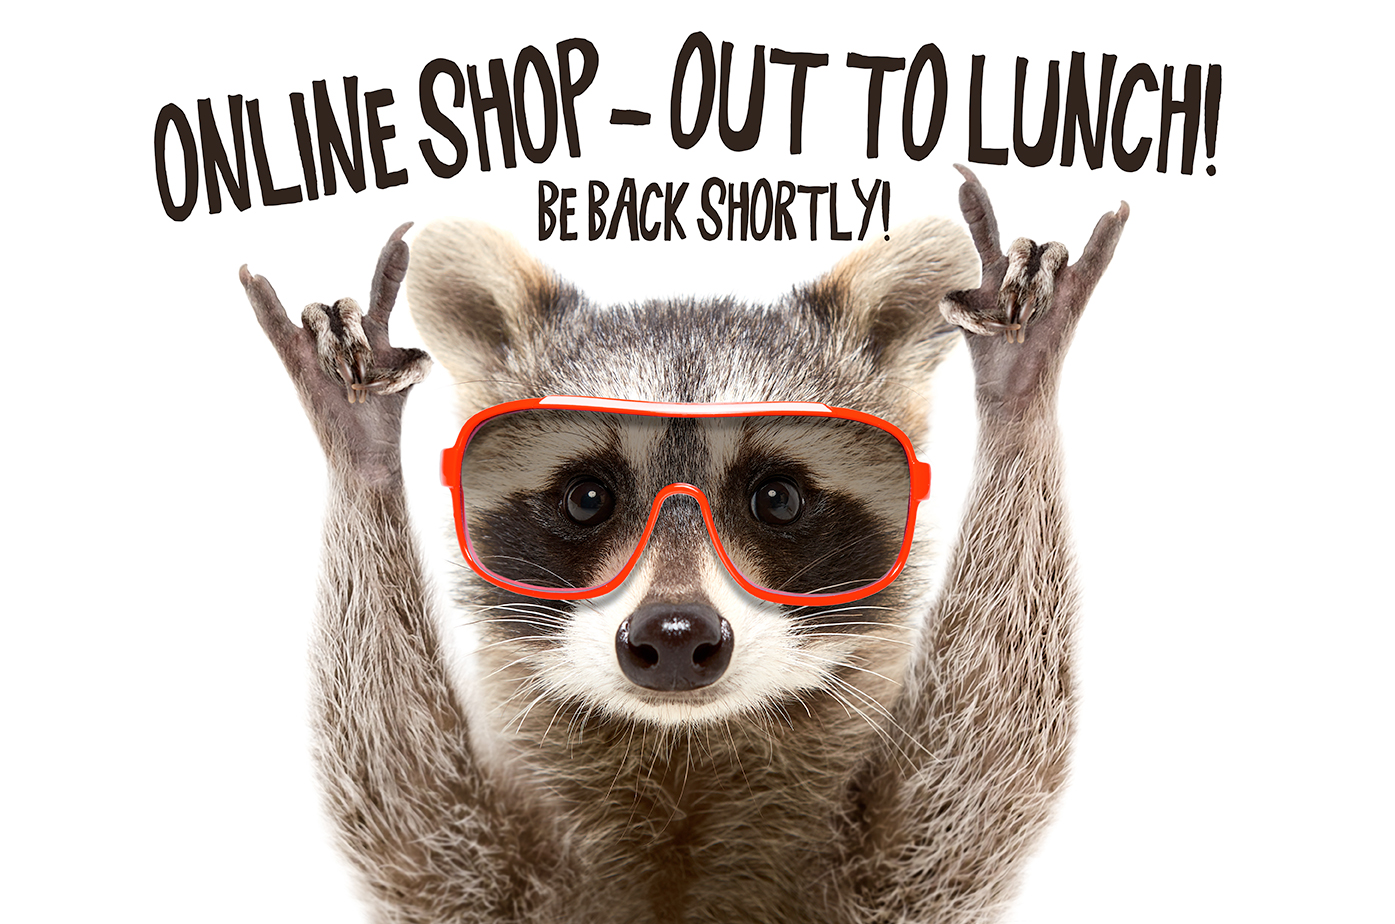 RACCOON-OUT-TO-LUNCH.jpg